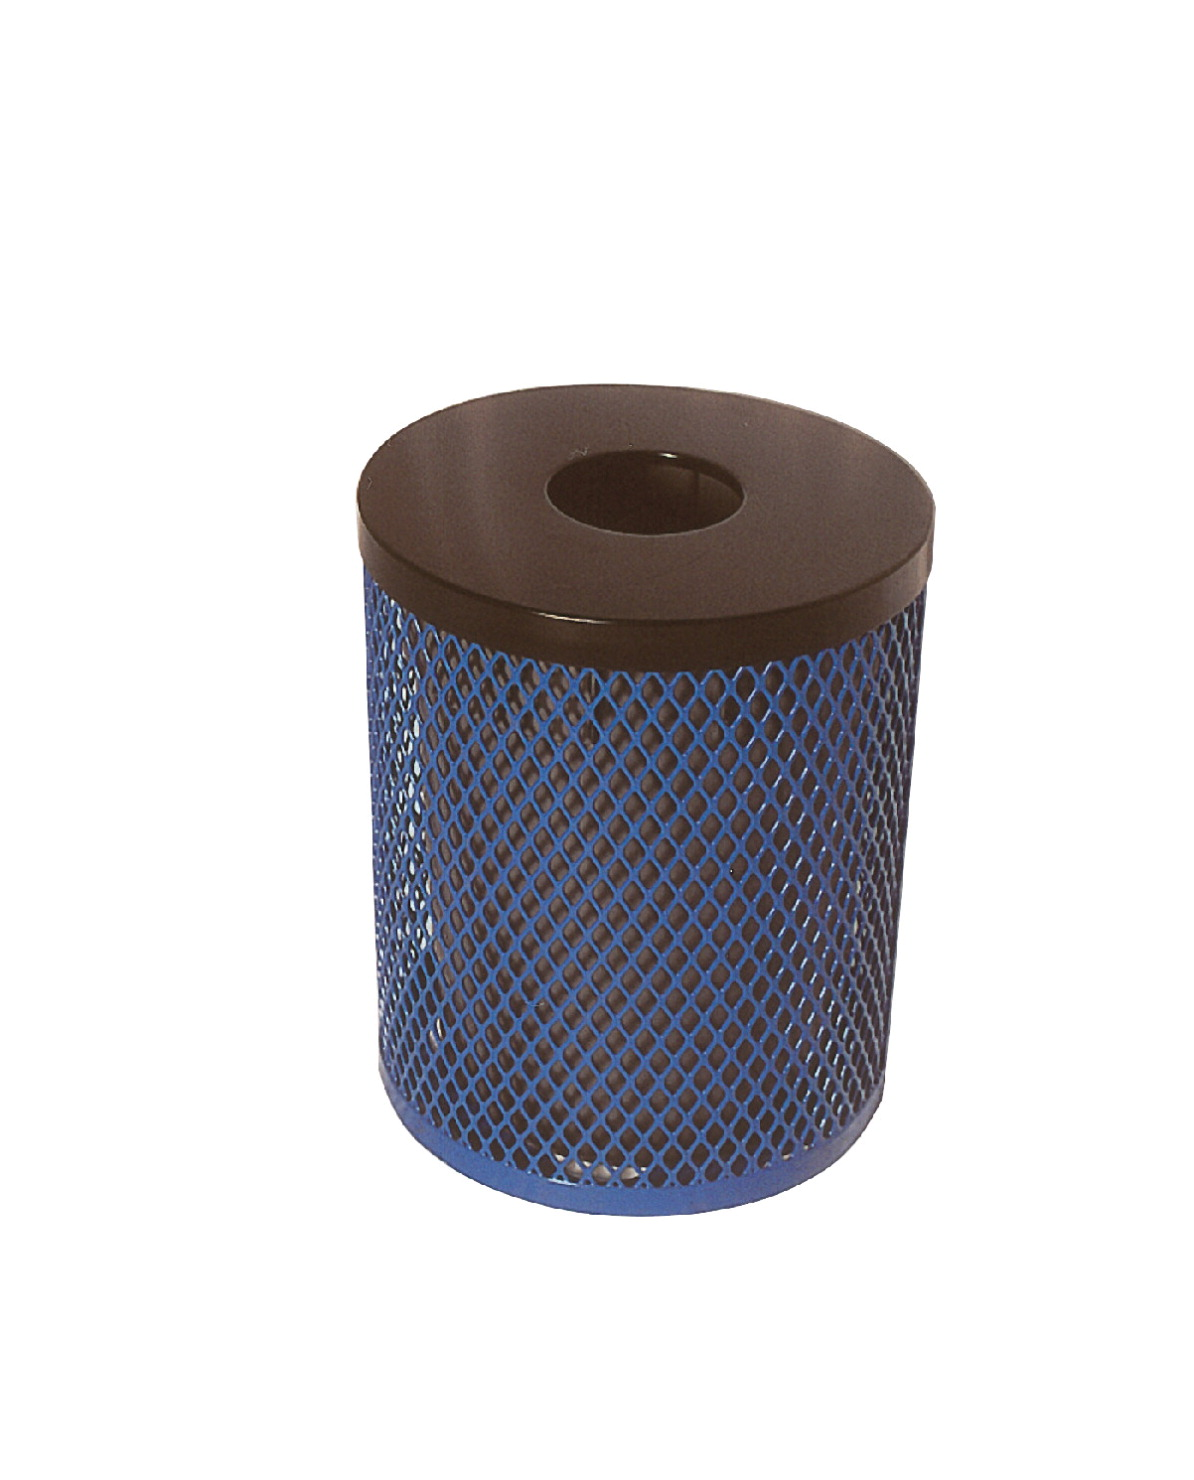 UltraSite UltraCoat Thermoplastic Trash Receptacle, Diamond Pattern, 32 Gallons, Various Options